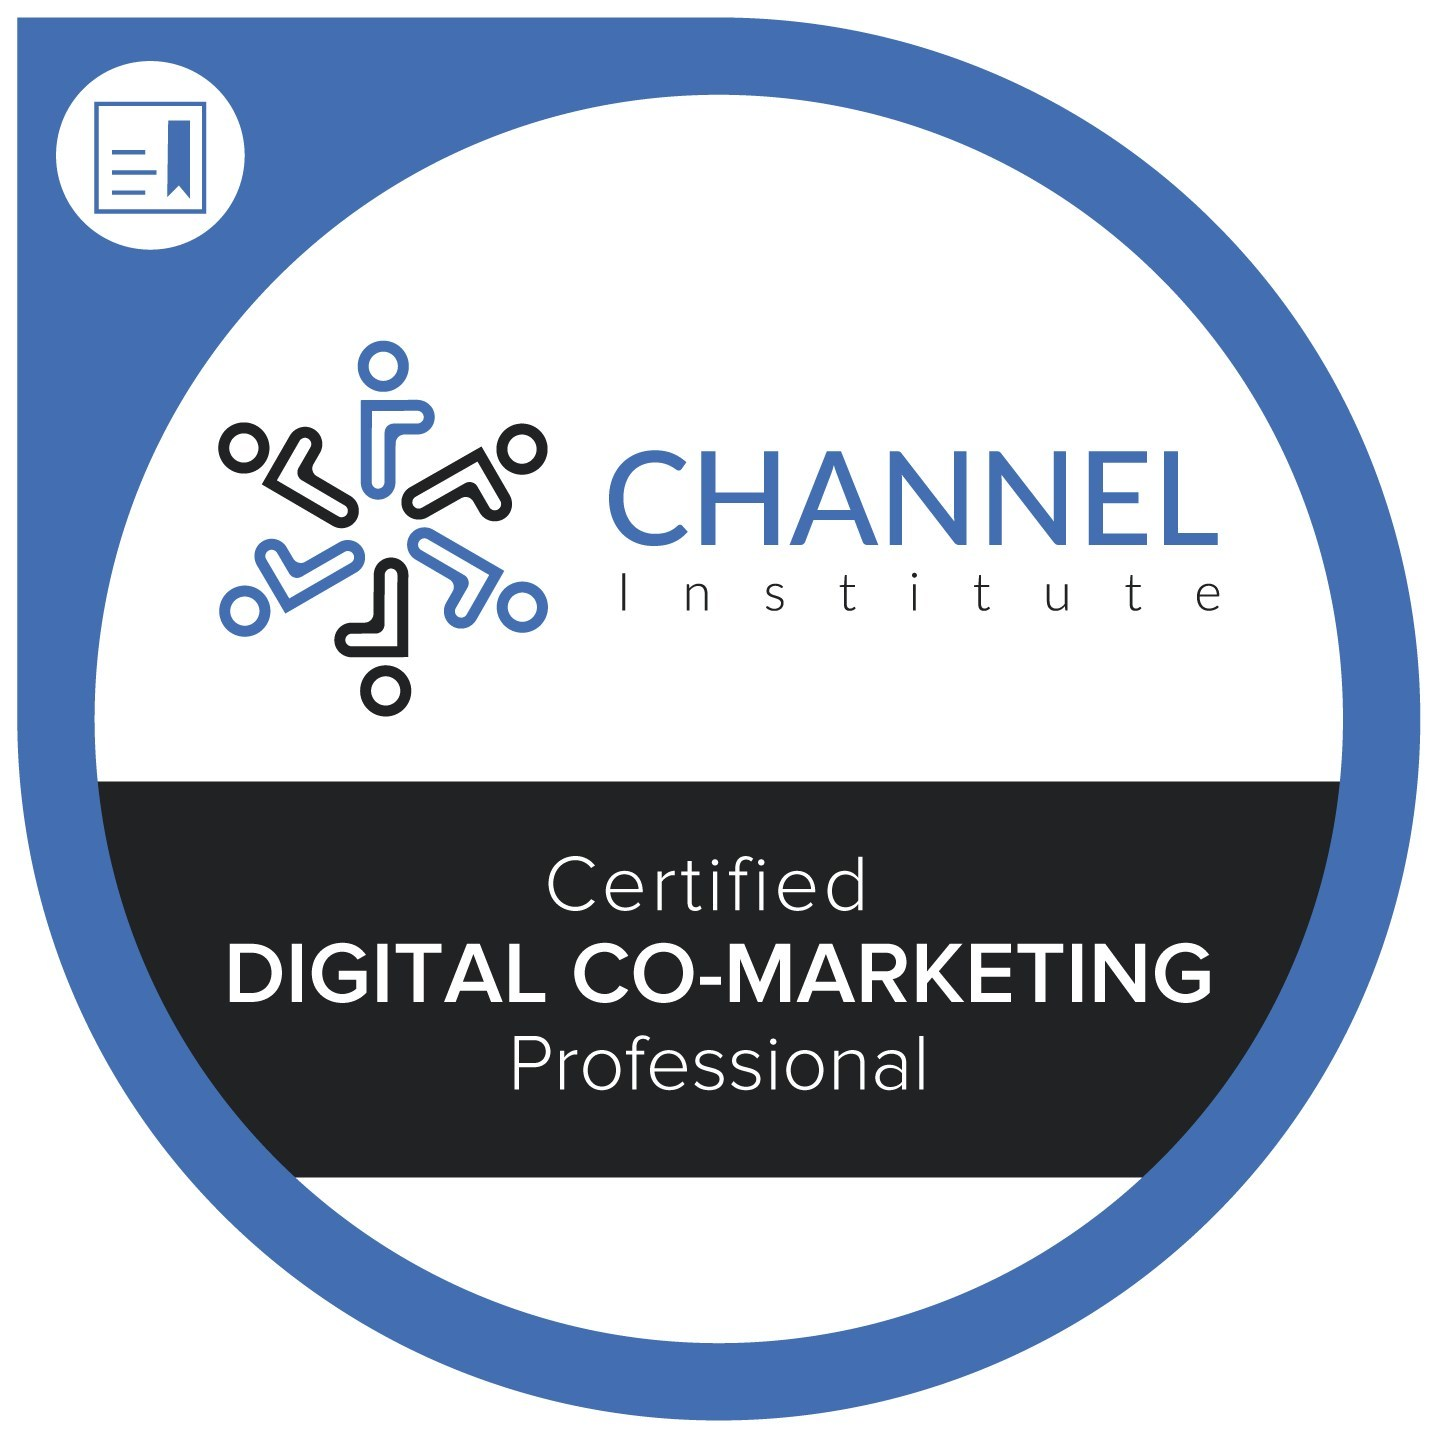 Certificate in Digital Co-Marketing